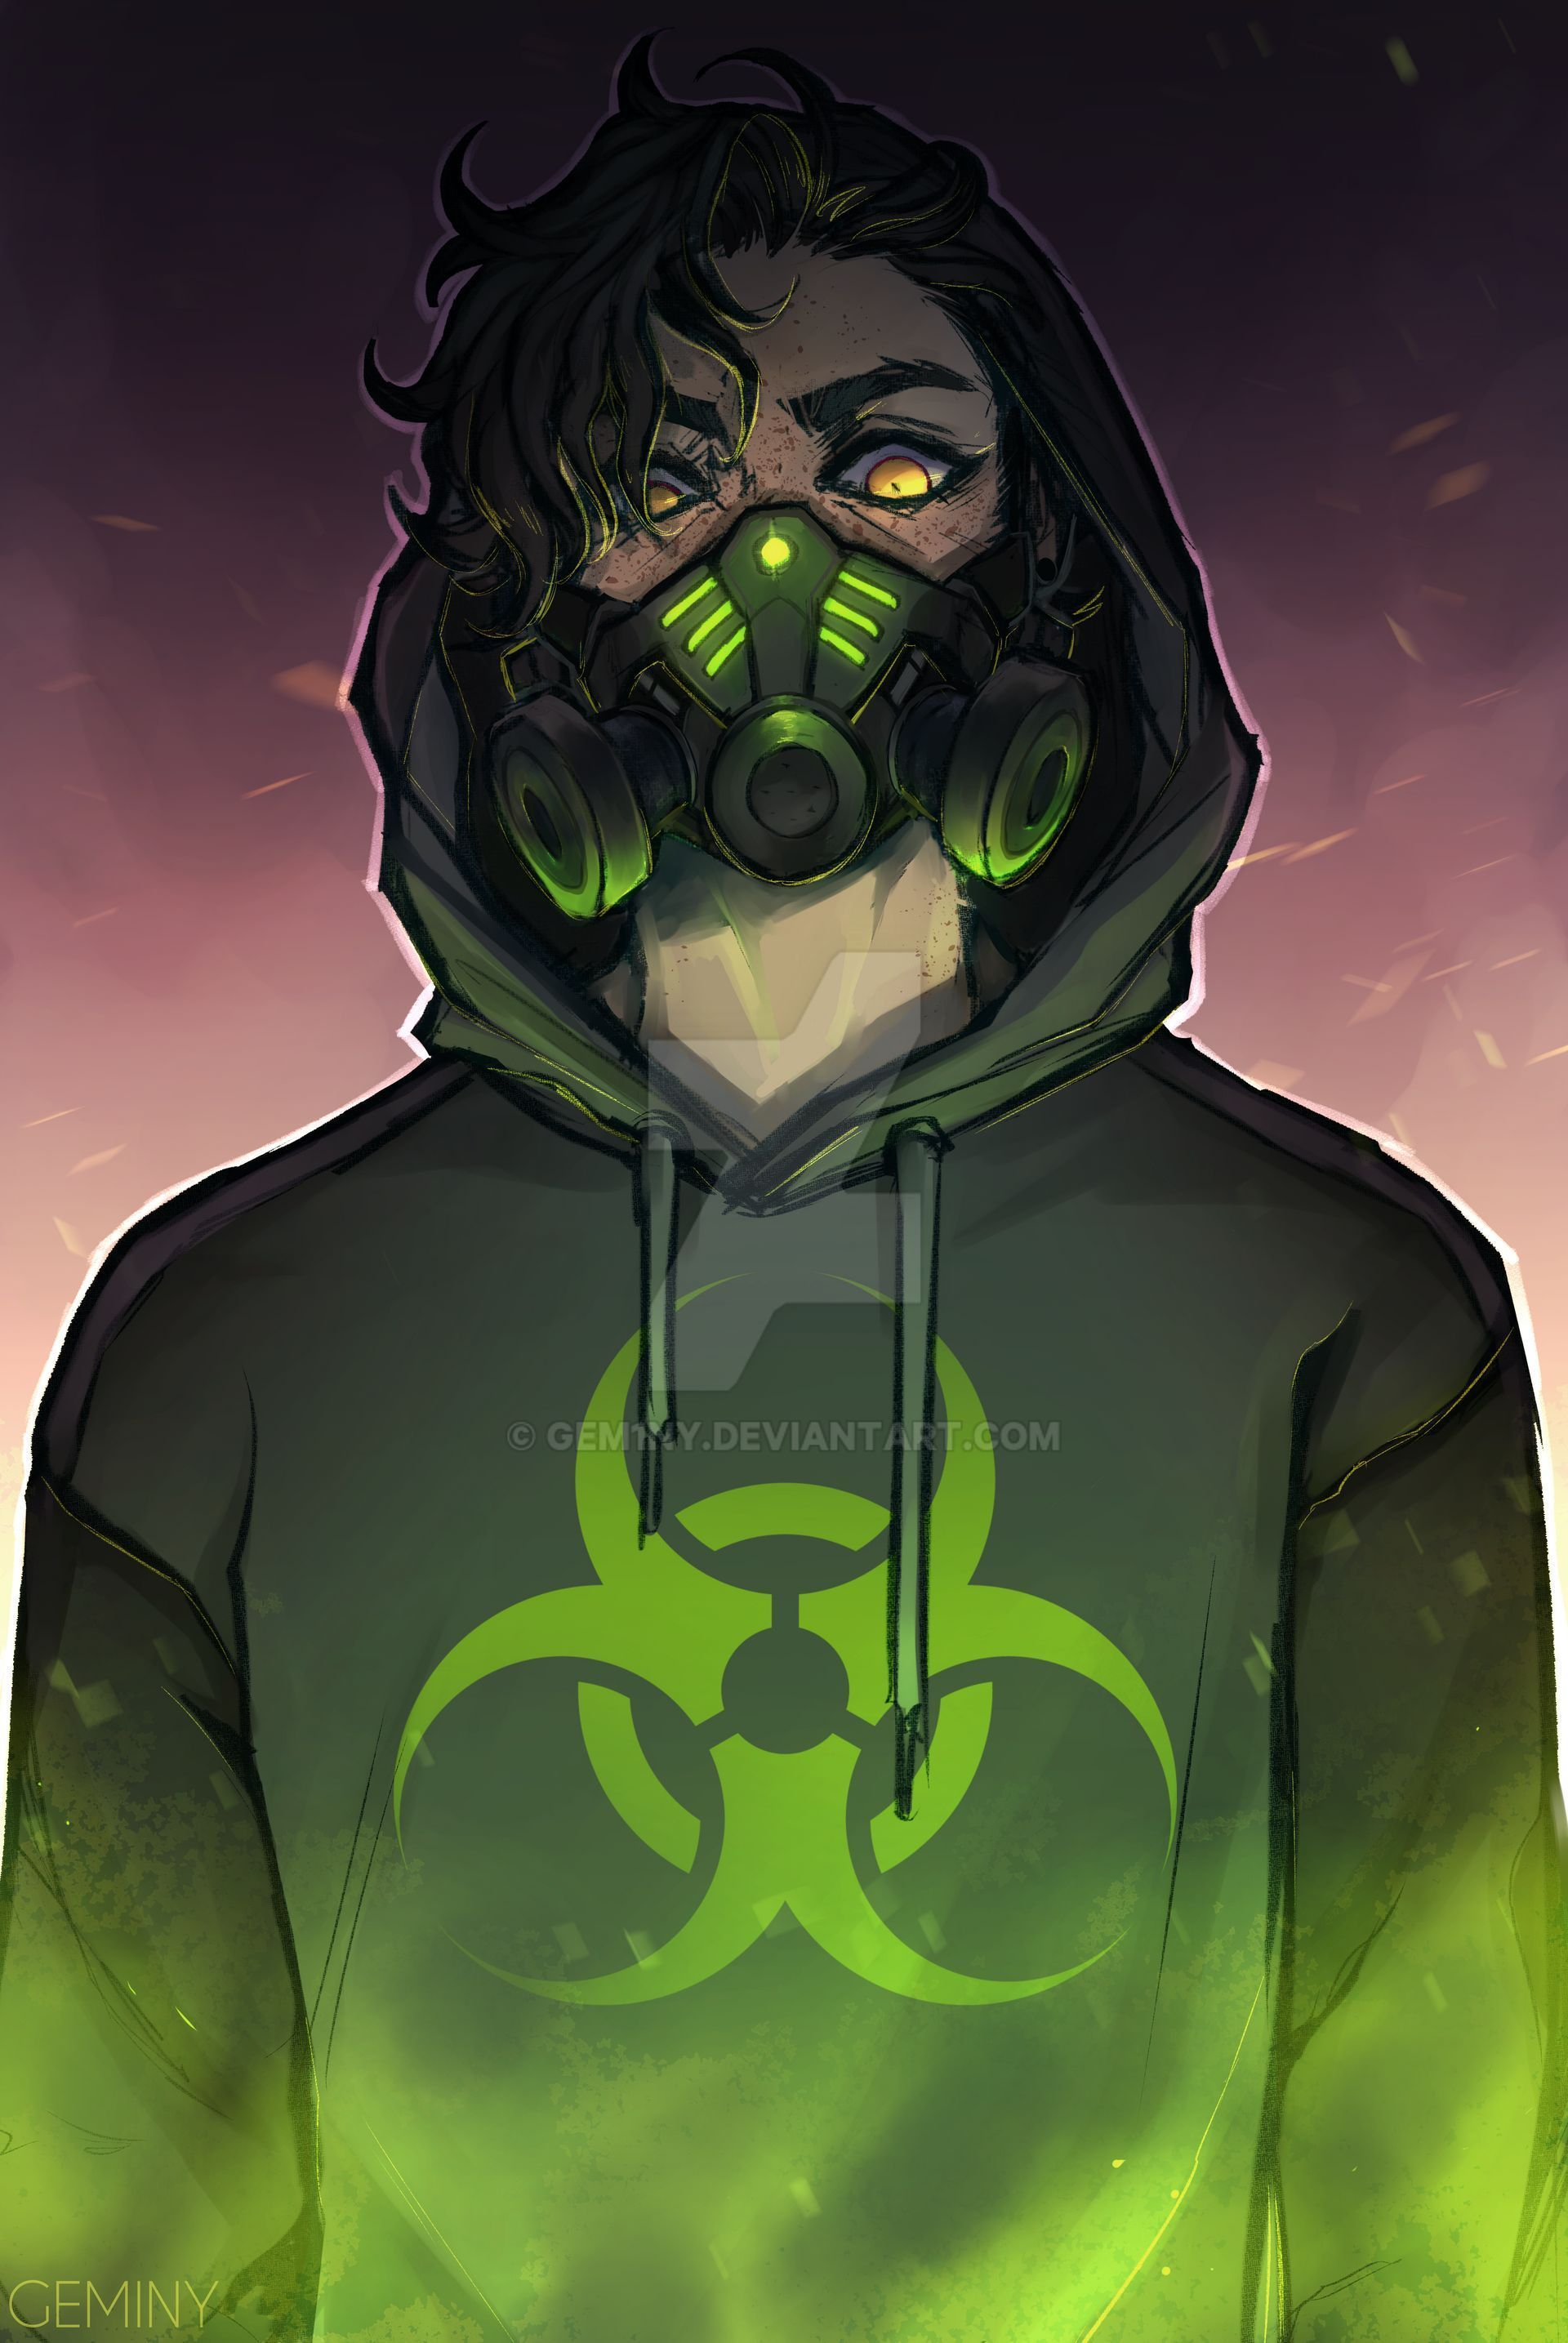 Toxic Speedpaint Remake By Gem1ny On Deviantart In 2020 Anime Drawings Boy Dark Anime Guys Anime Character Design